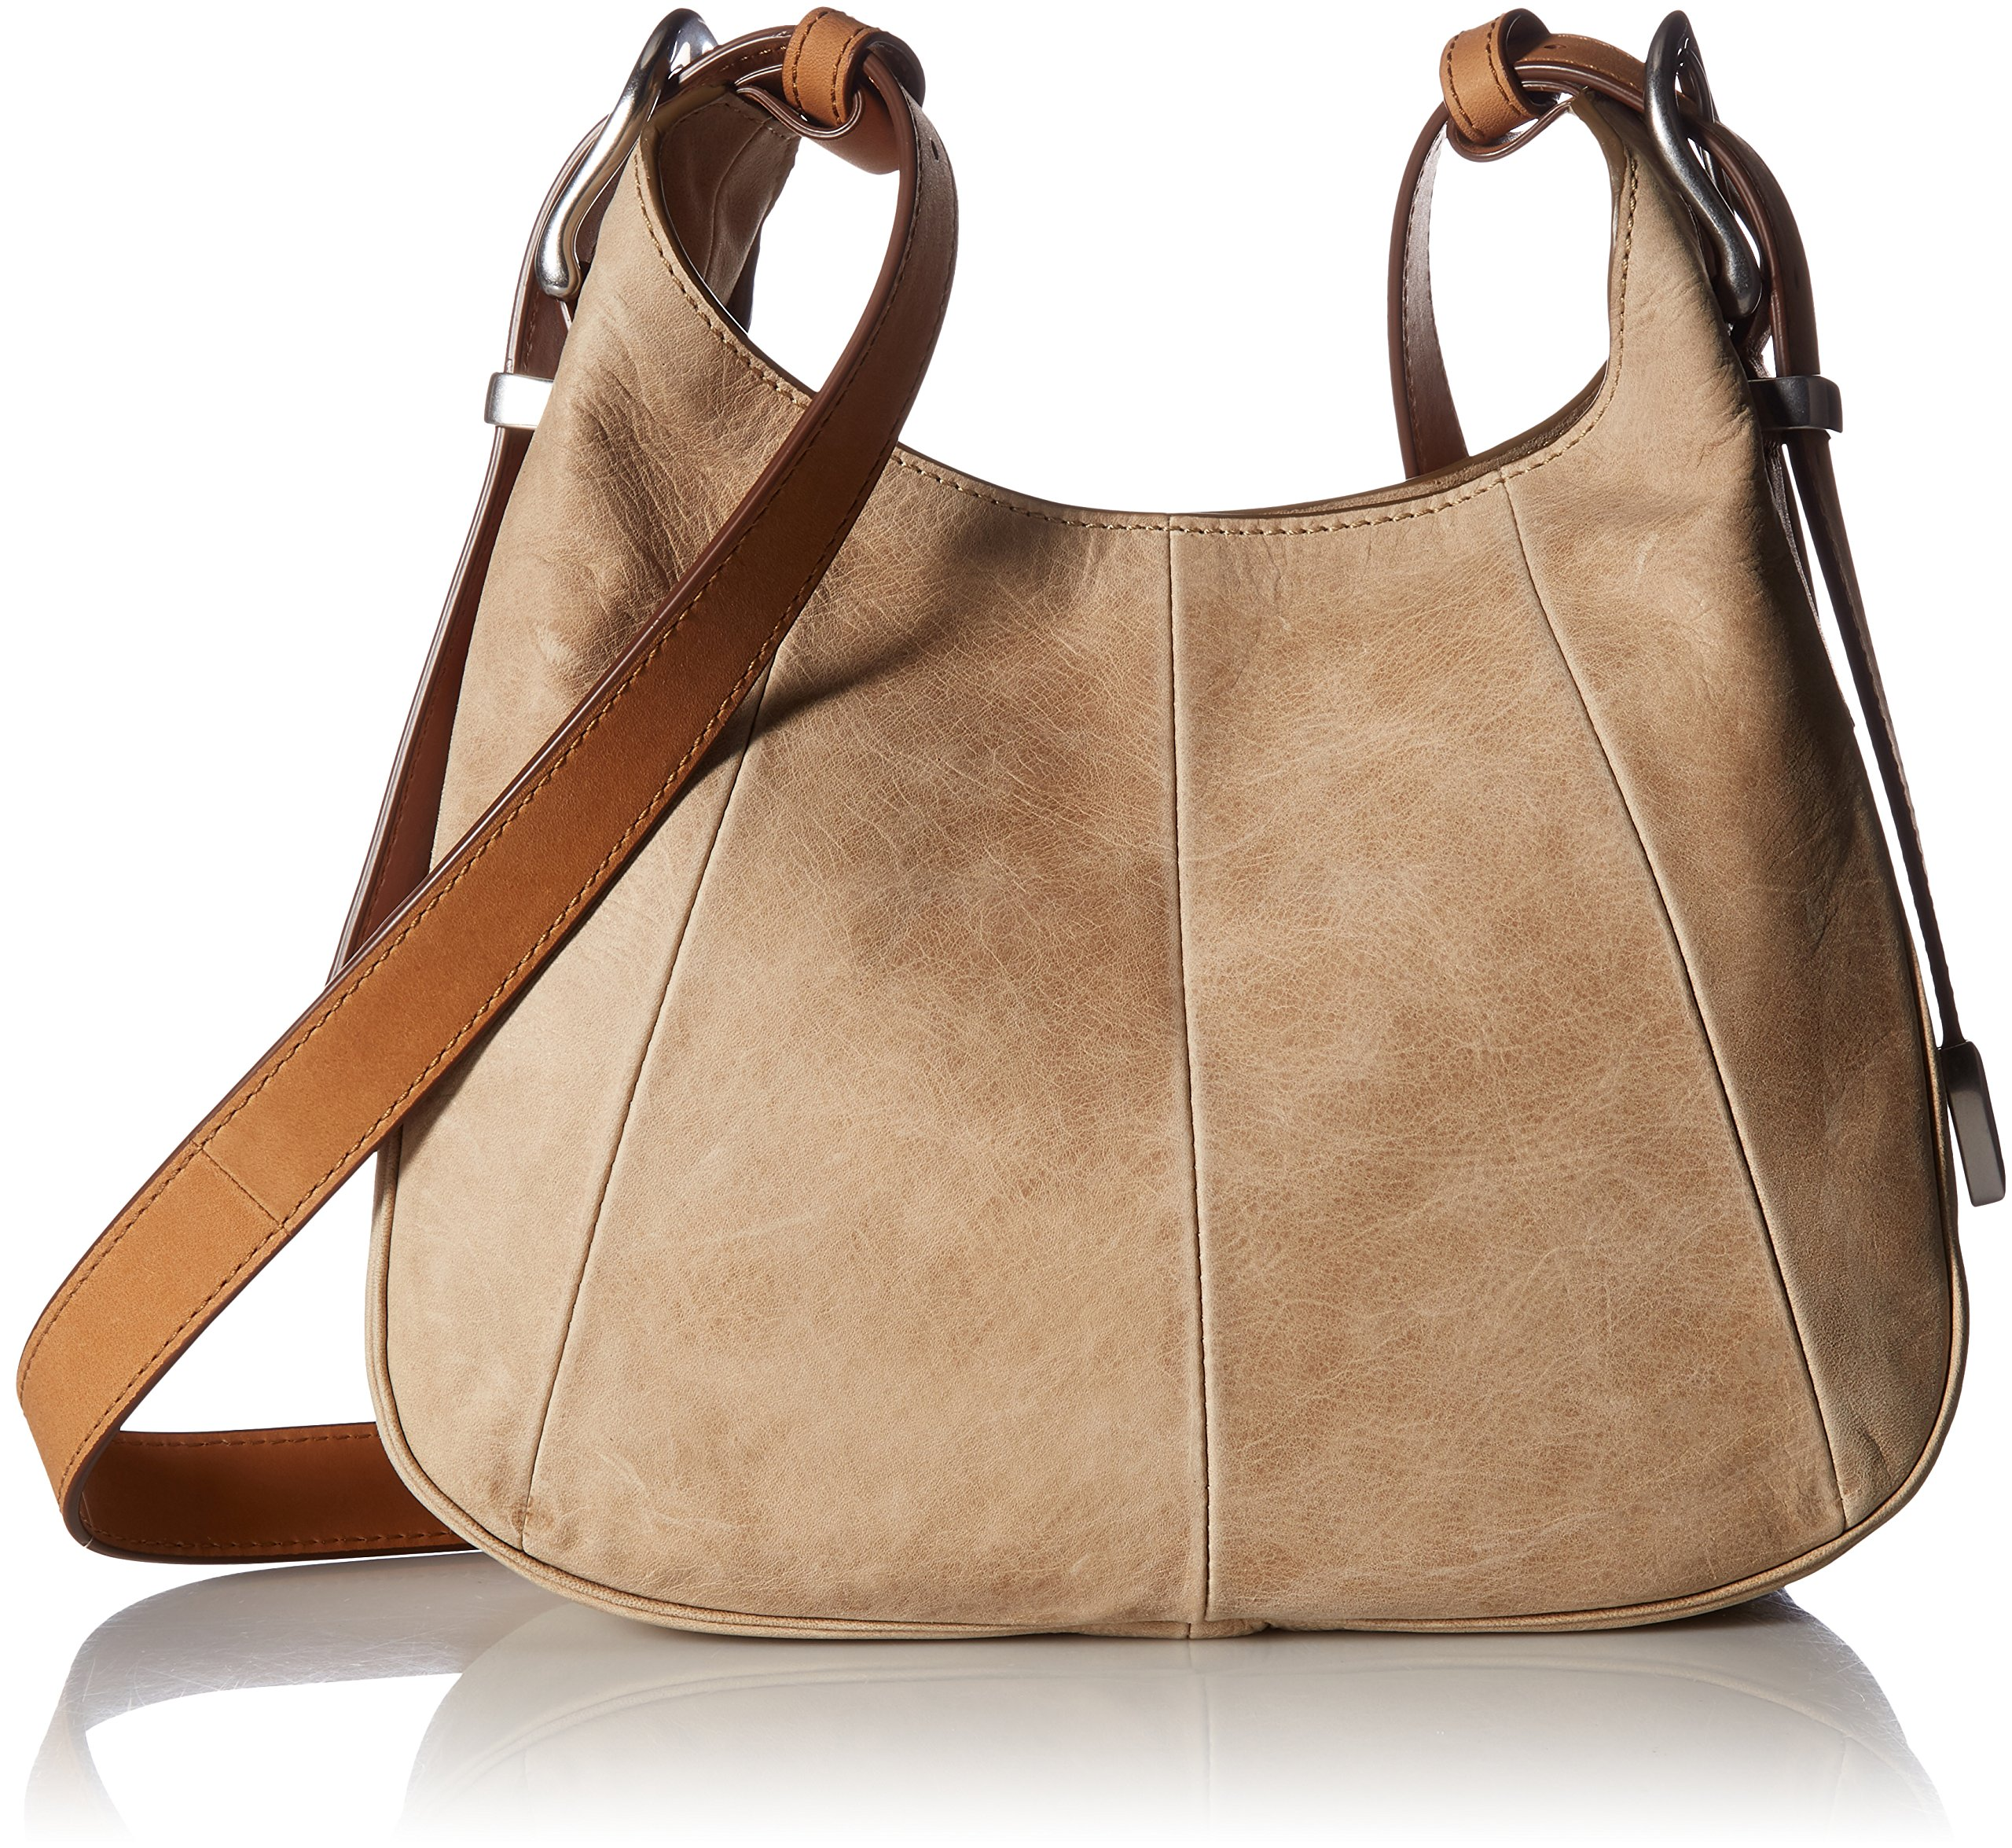 FRYE Jacqui Crossbody Leather Handbag, Sand